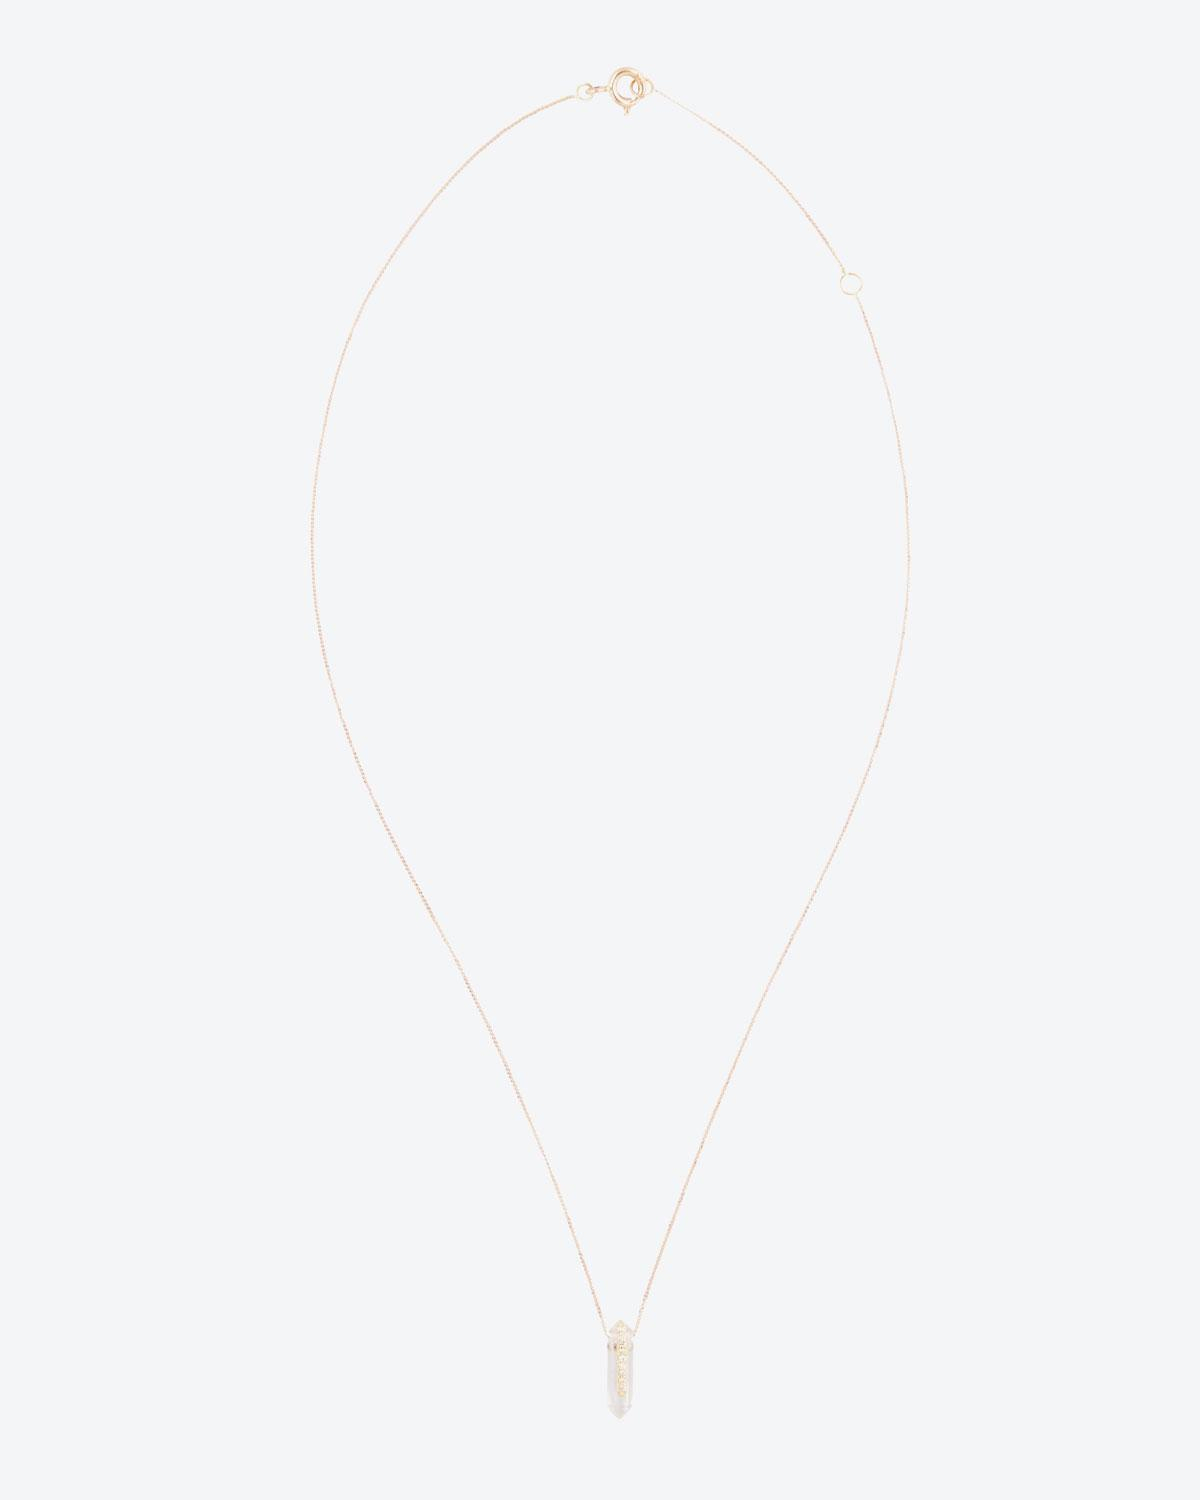 Pascale Monvoisin Moon N°1 Collier Or Jaune 9k, Crystal & diamants